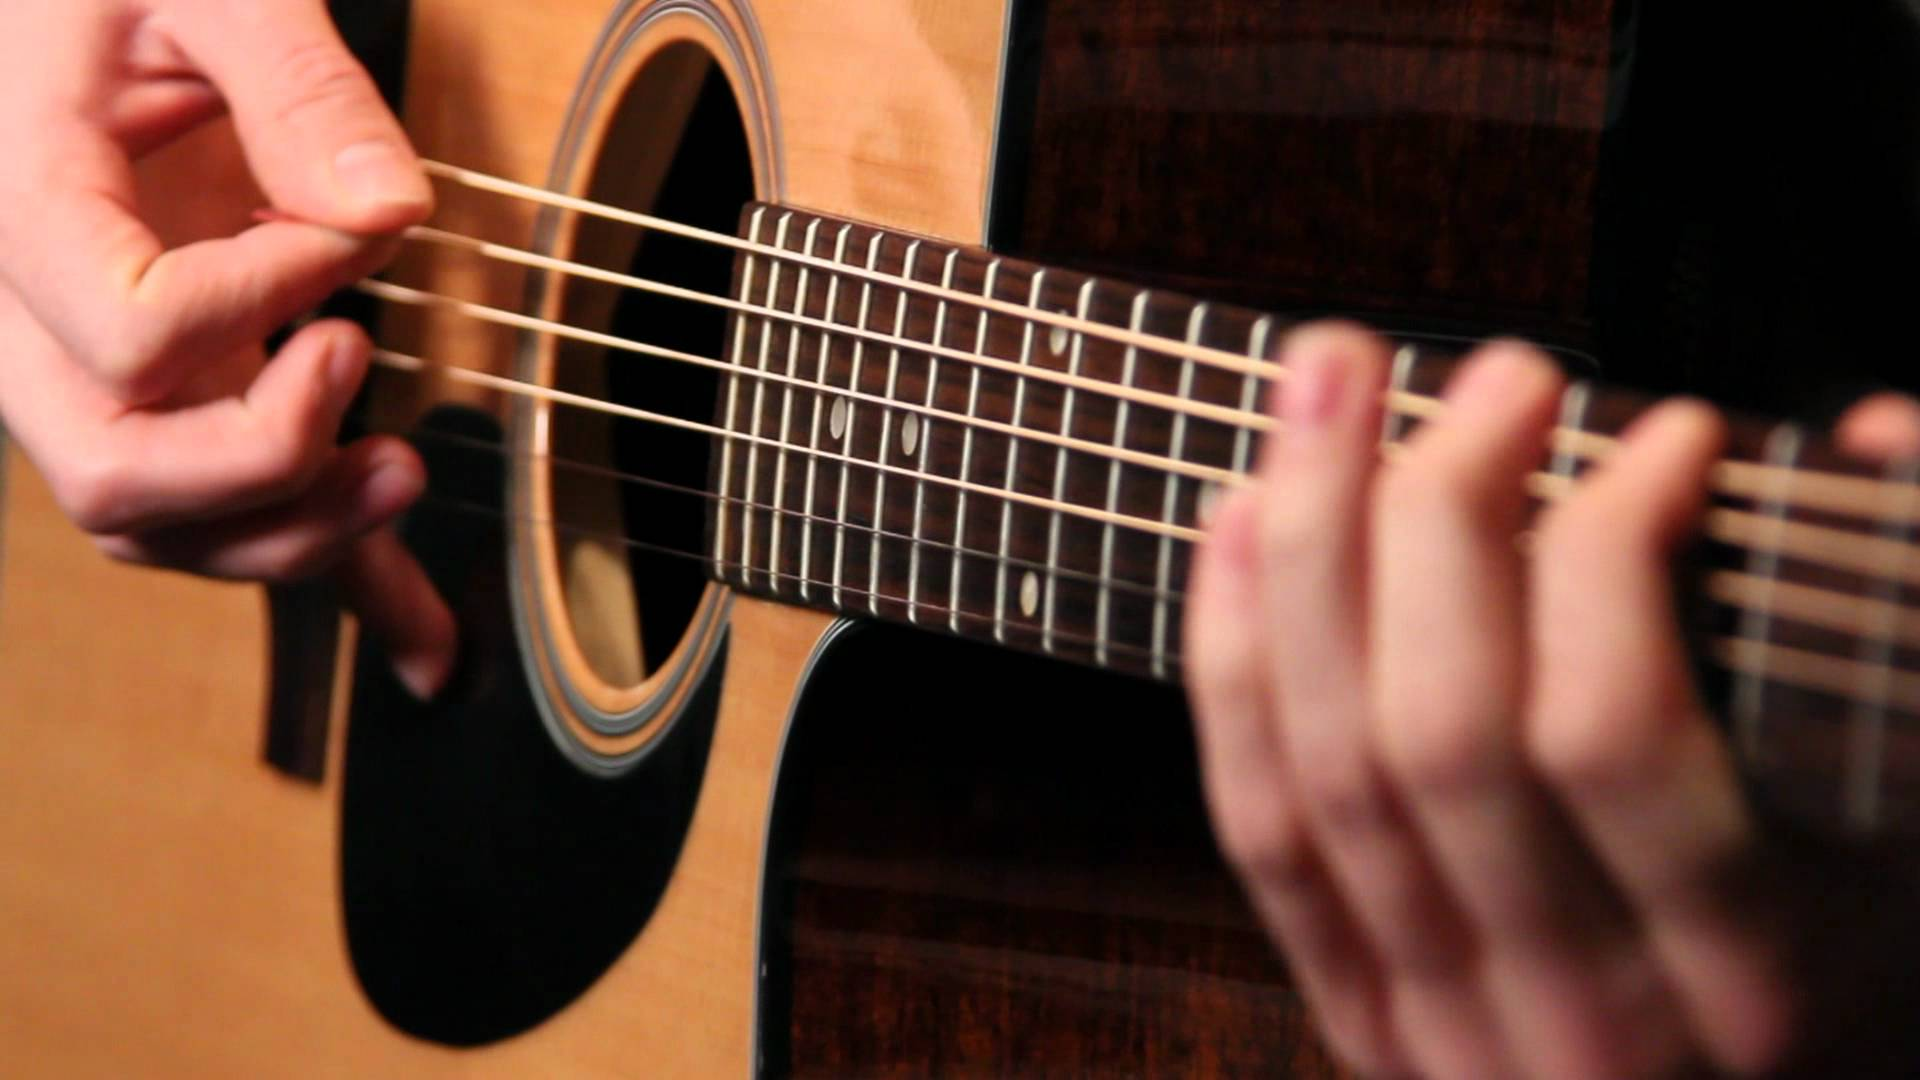 Guitar Wallpaper For Facebook Profile Girl 20 Popular Guitar Chord Songs